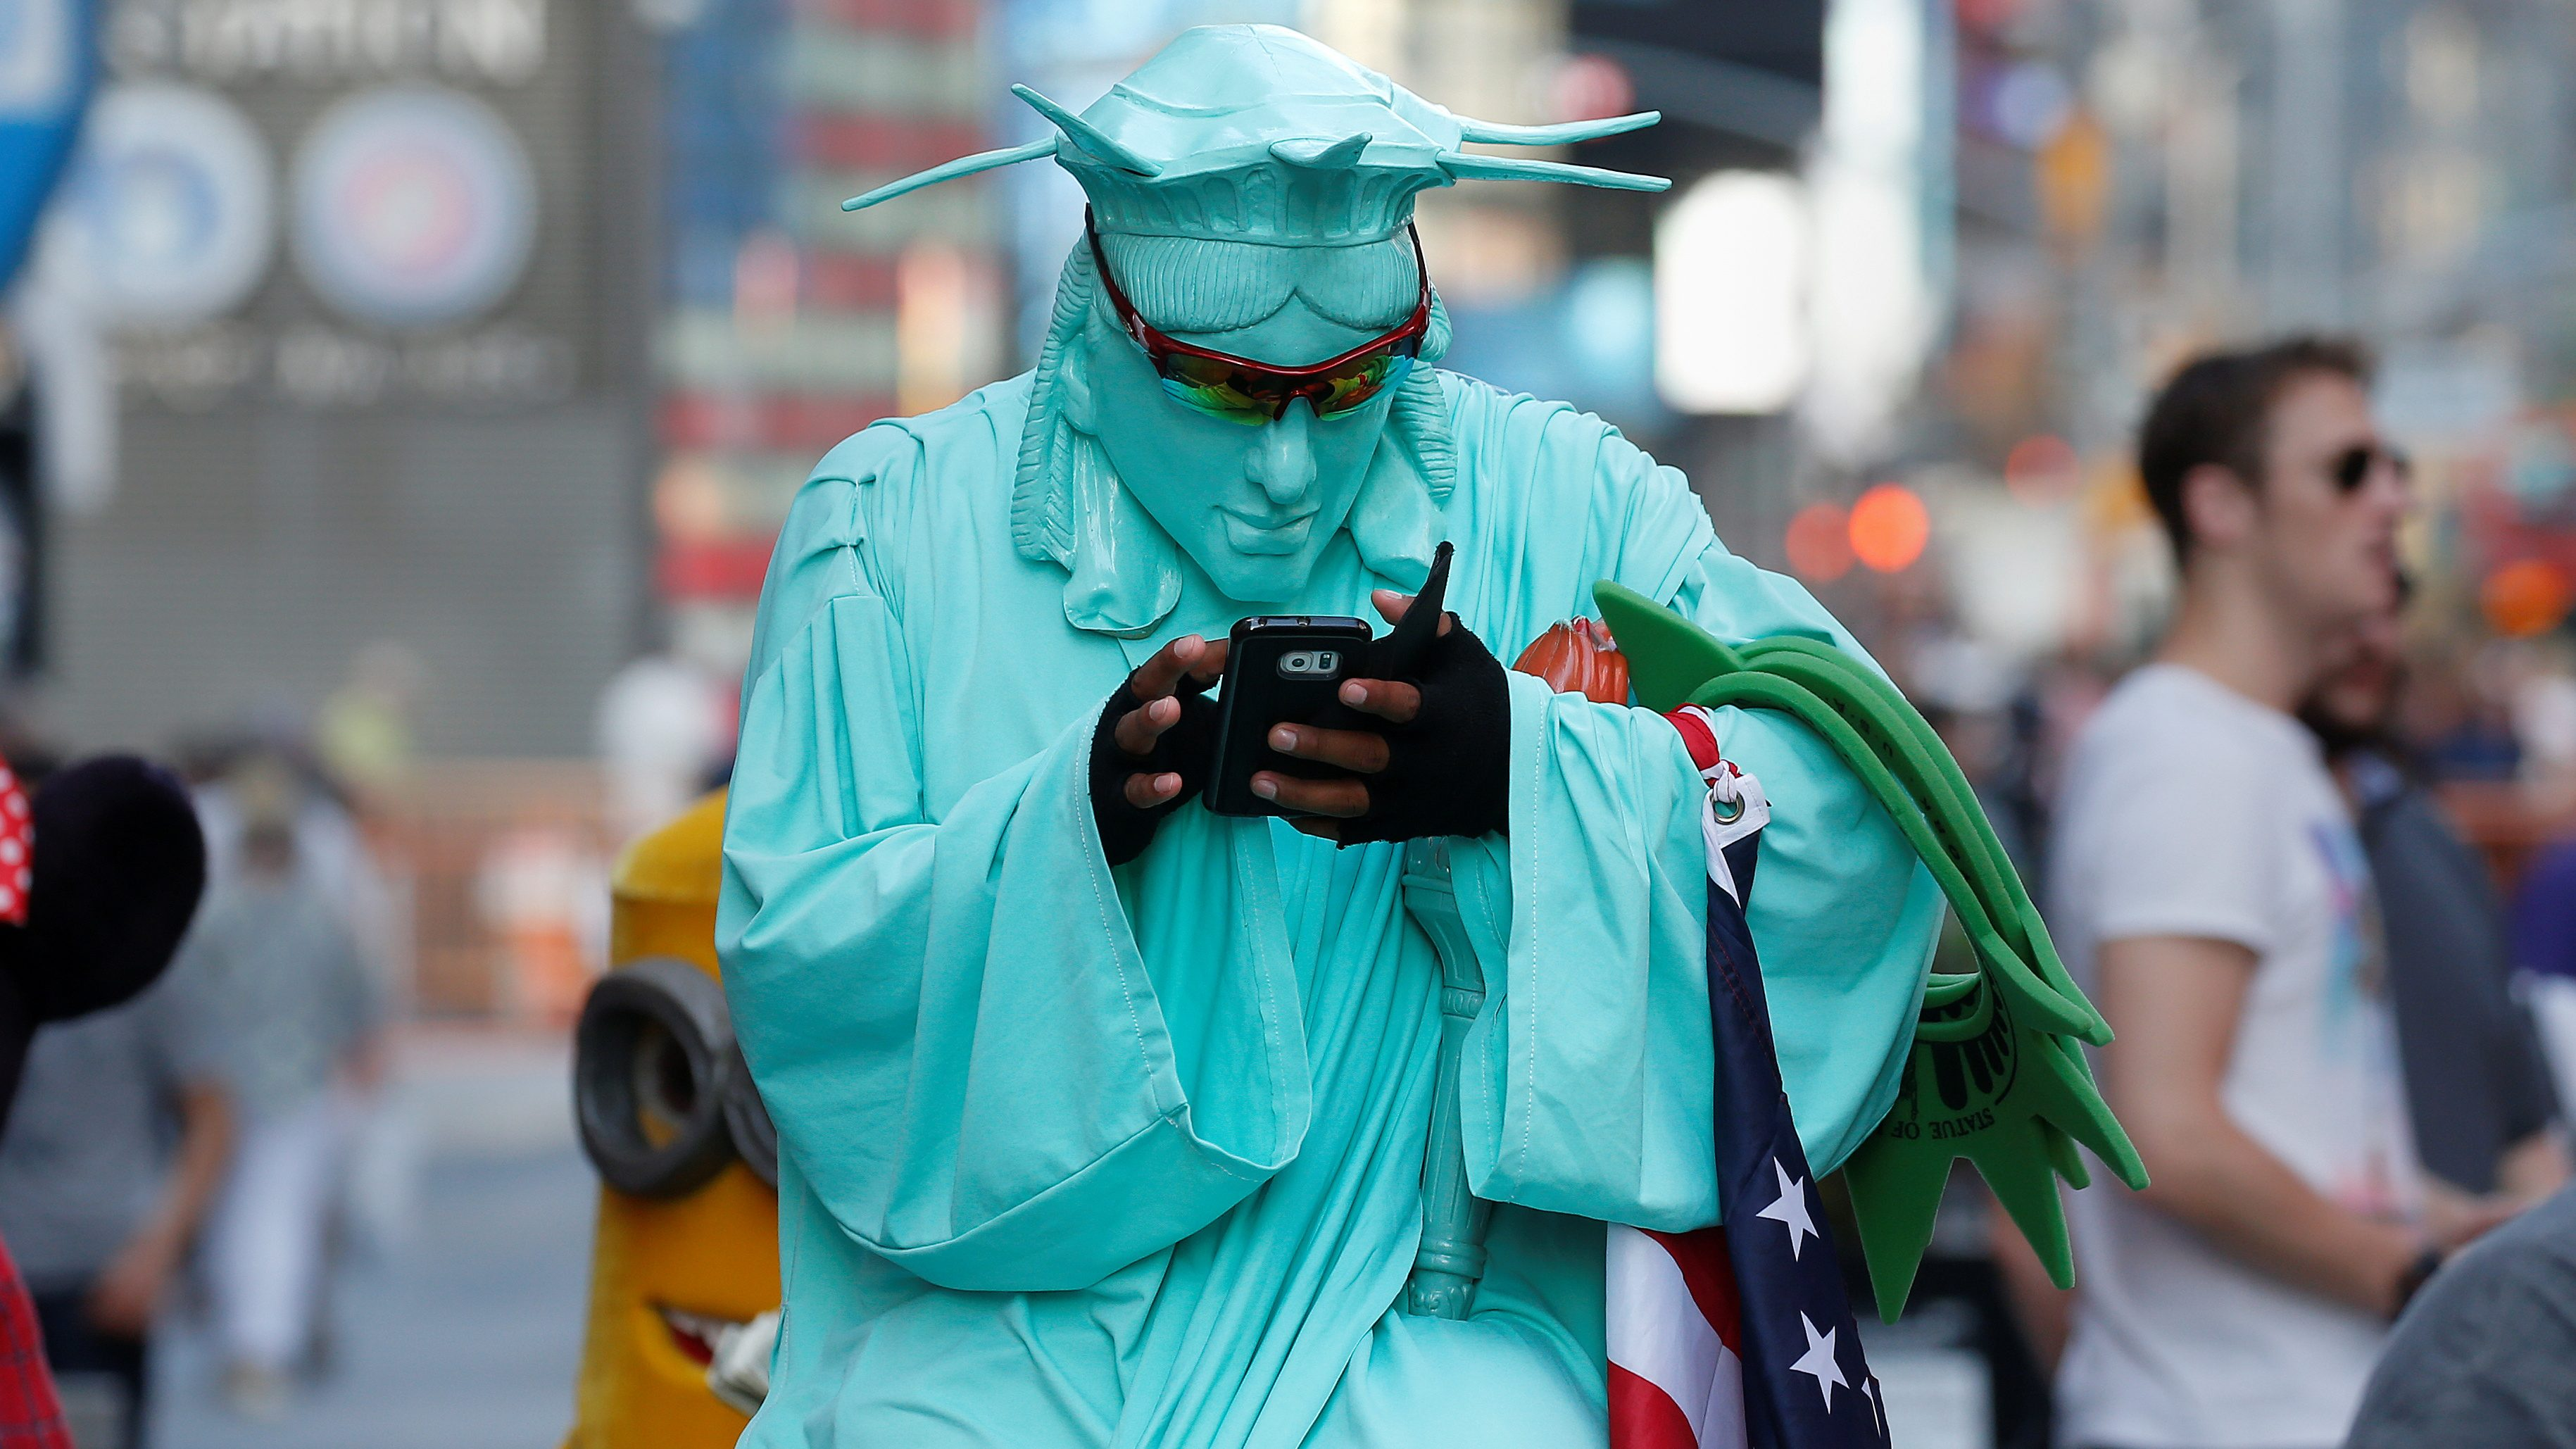 A person wearing a Statue of Liberty outfit to pose for tips checks his cell phone during warm weather in Times Square in the Manhattan borough of New York, New York, U.S., October 19, 2016.